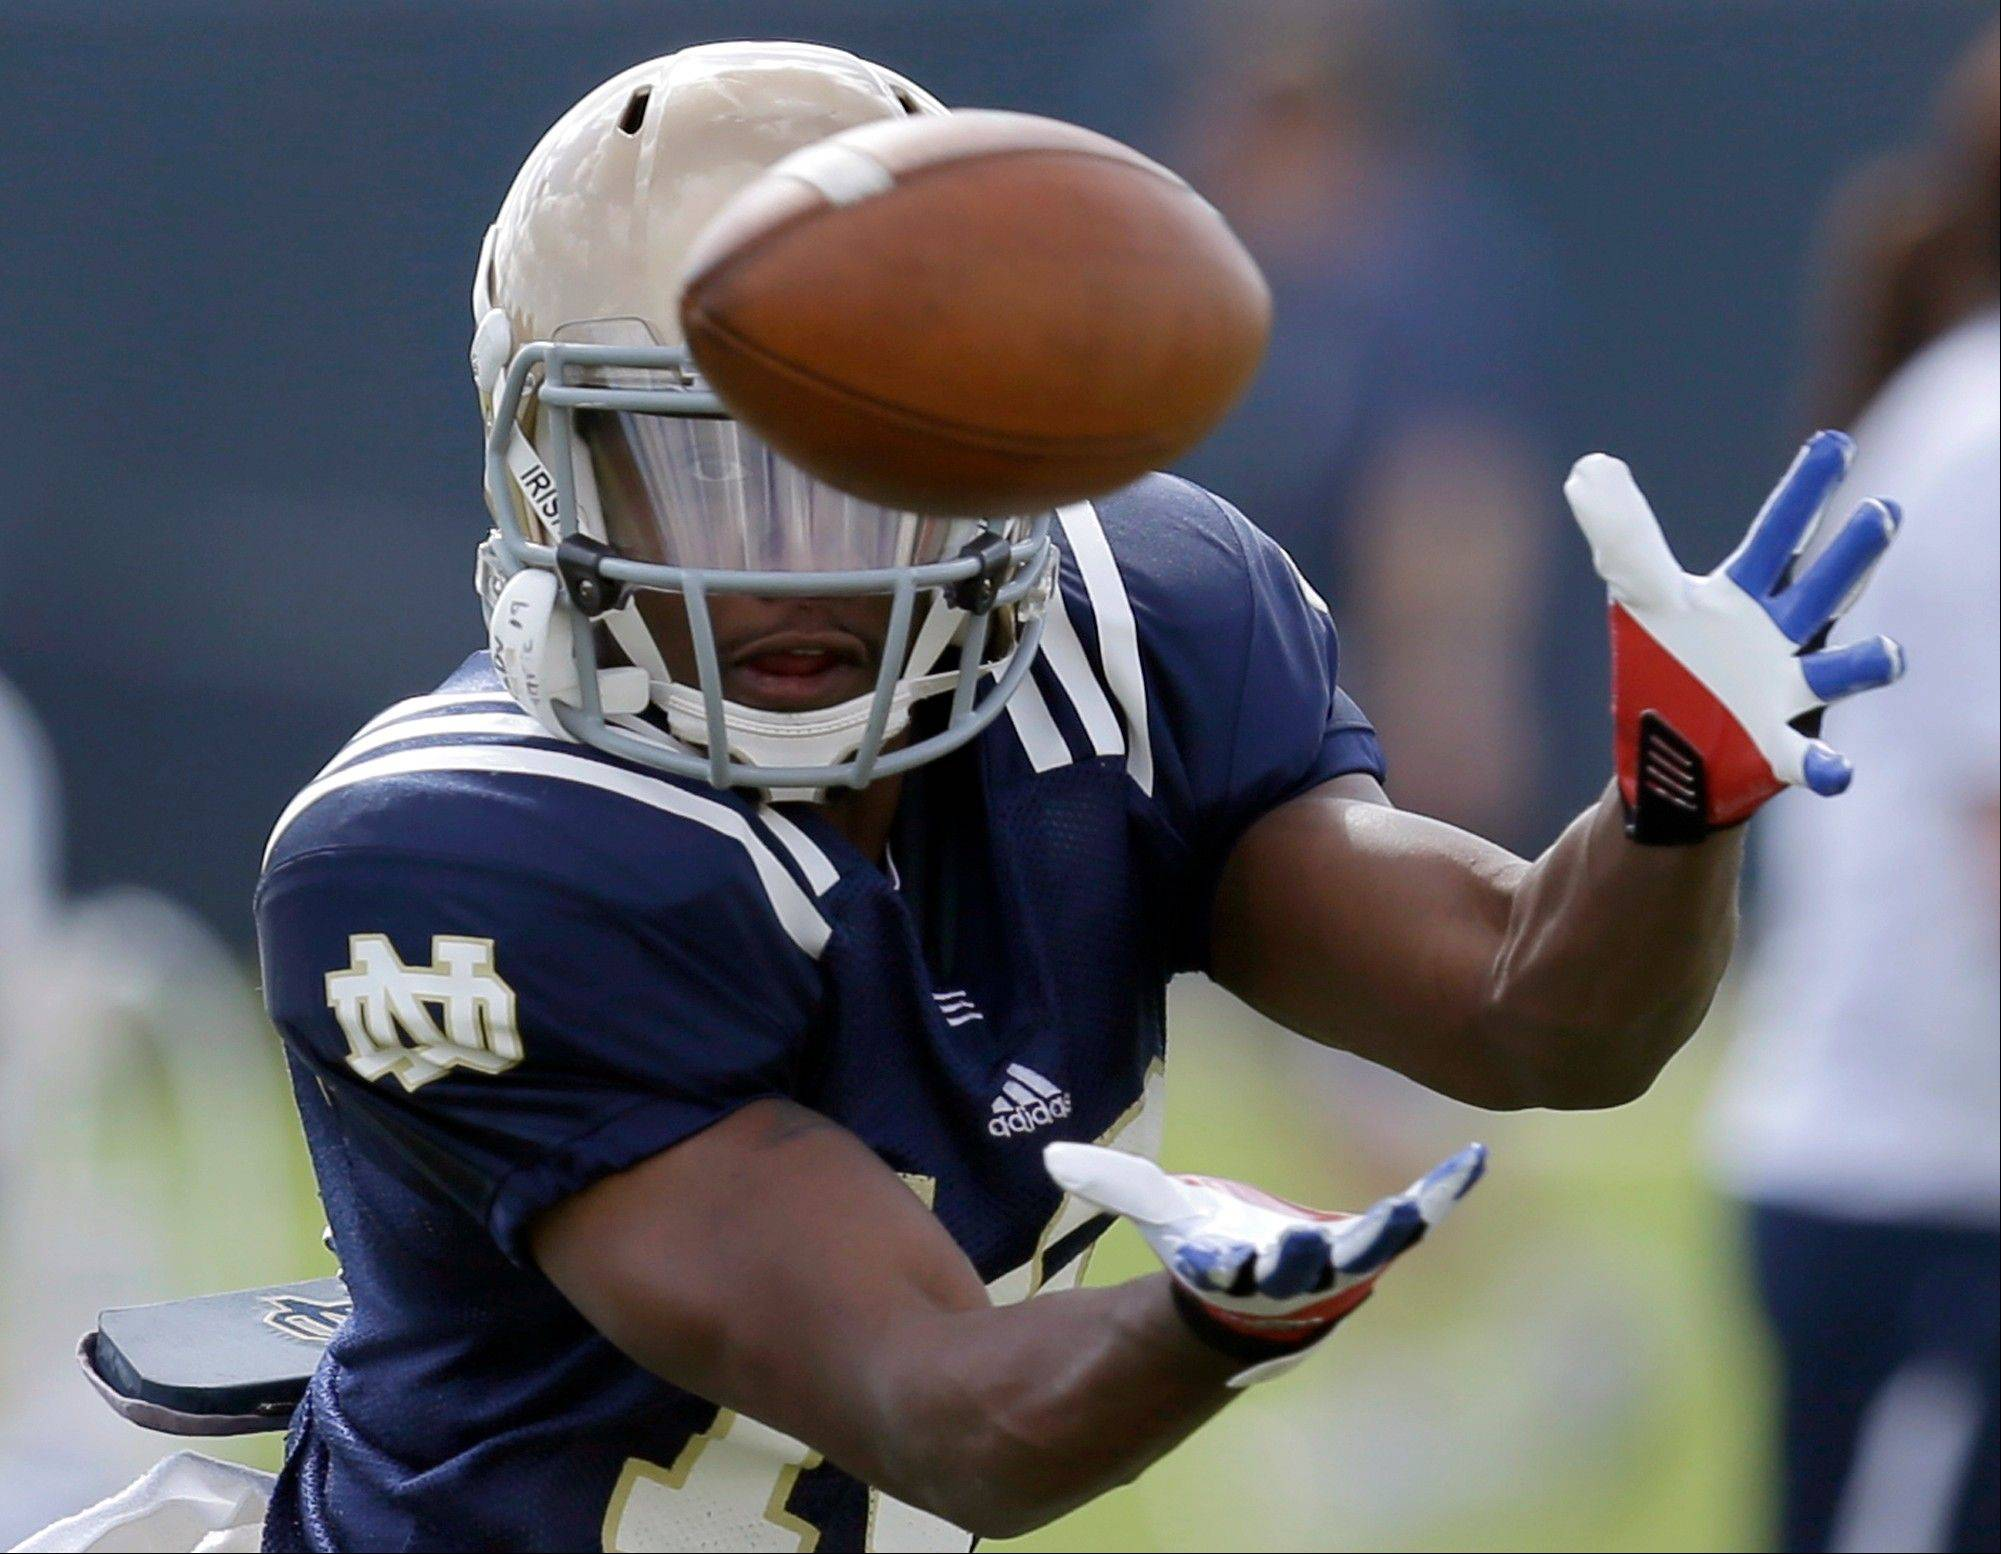 Notre Dame wide receiver Davonte' Neal catches a pass Thursday during practice at the Miami Dolphins' training facility in Davie, Fla.